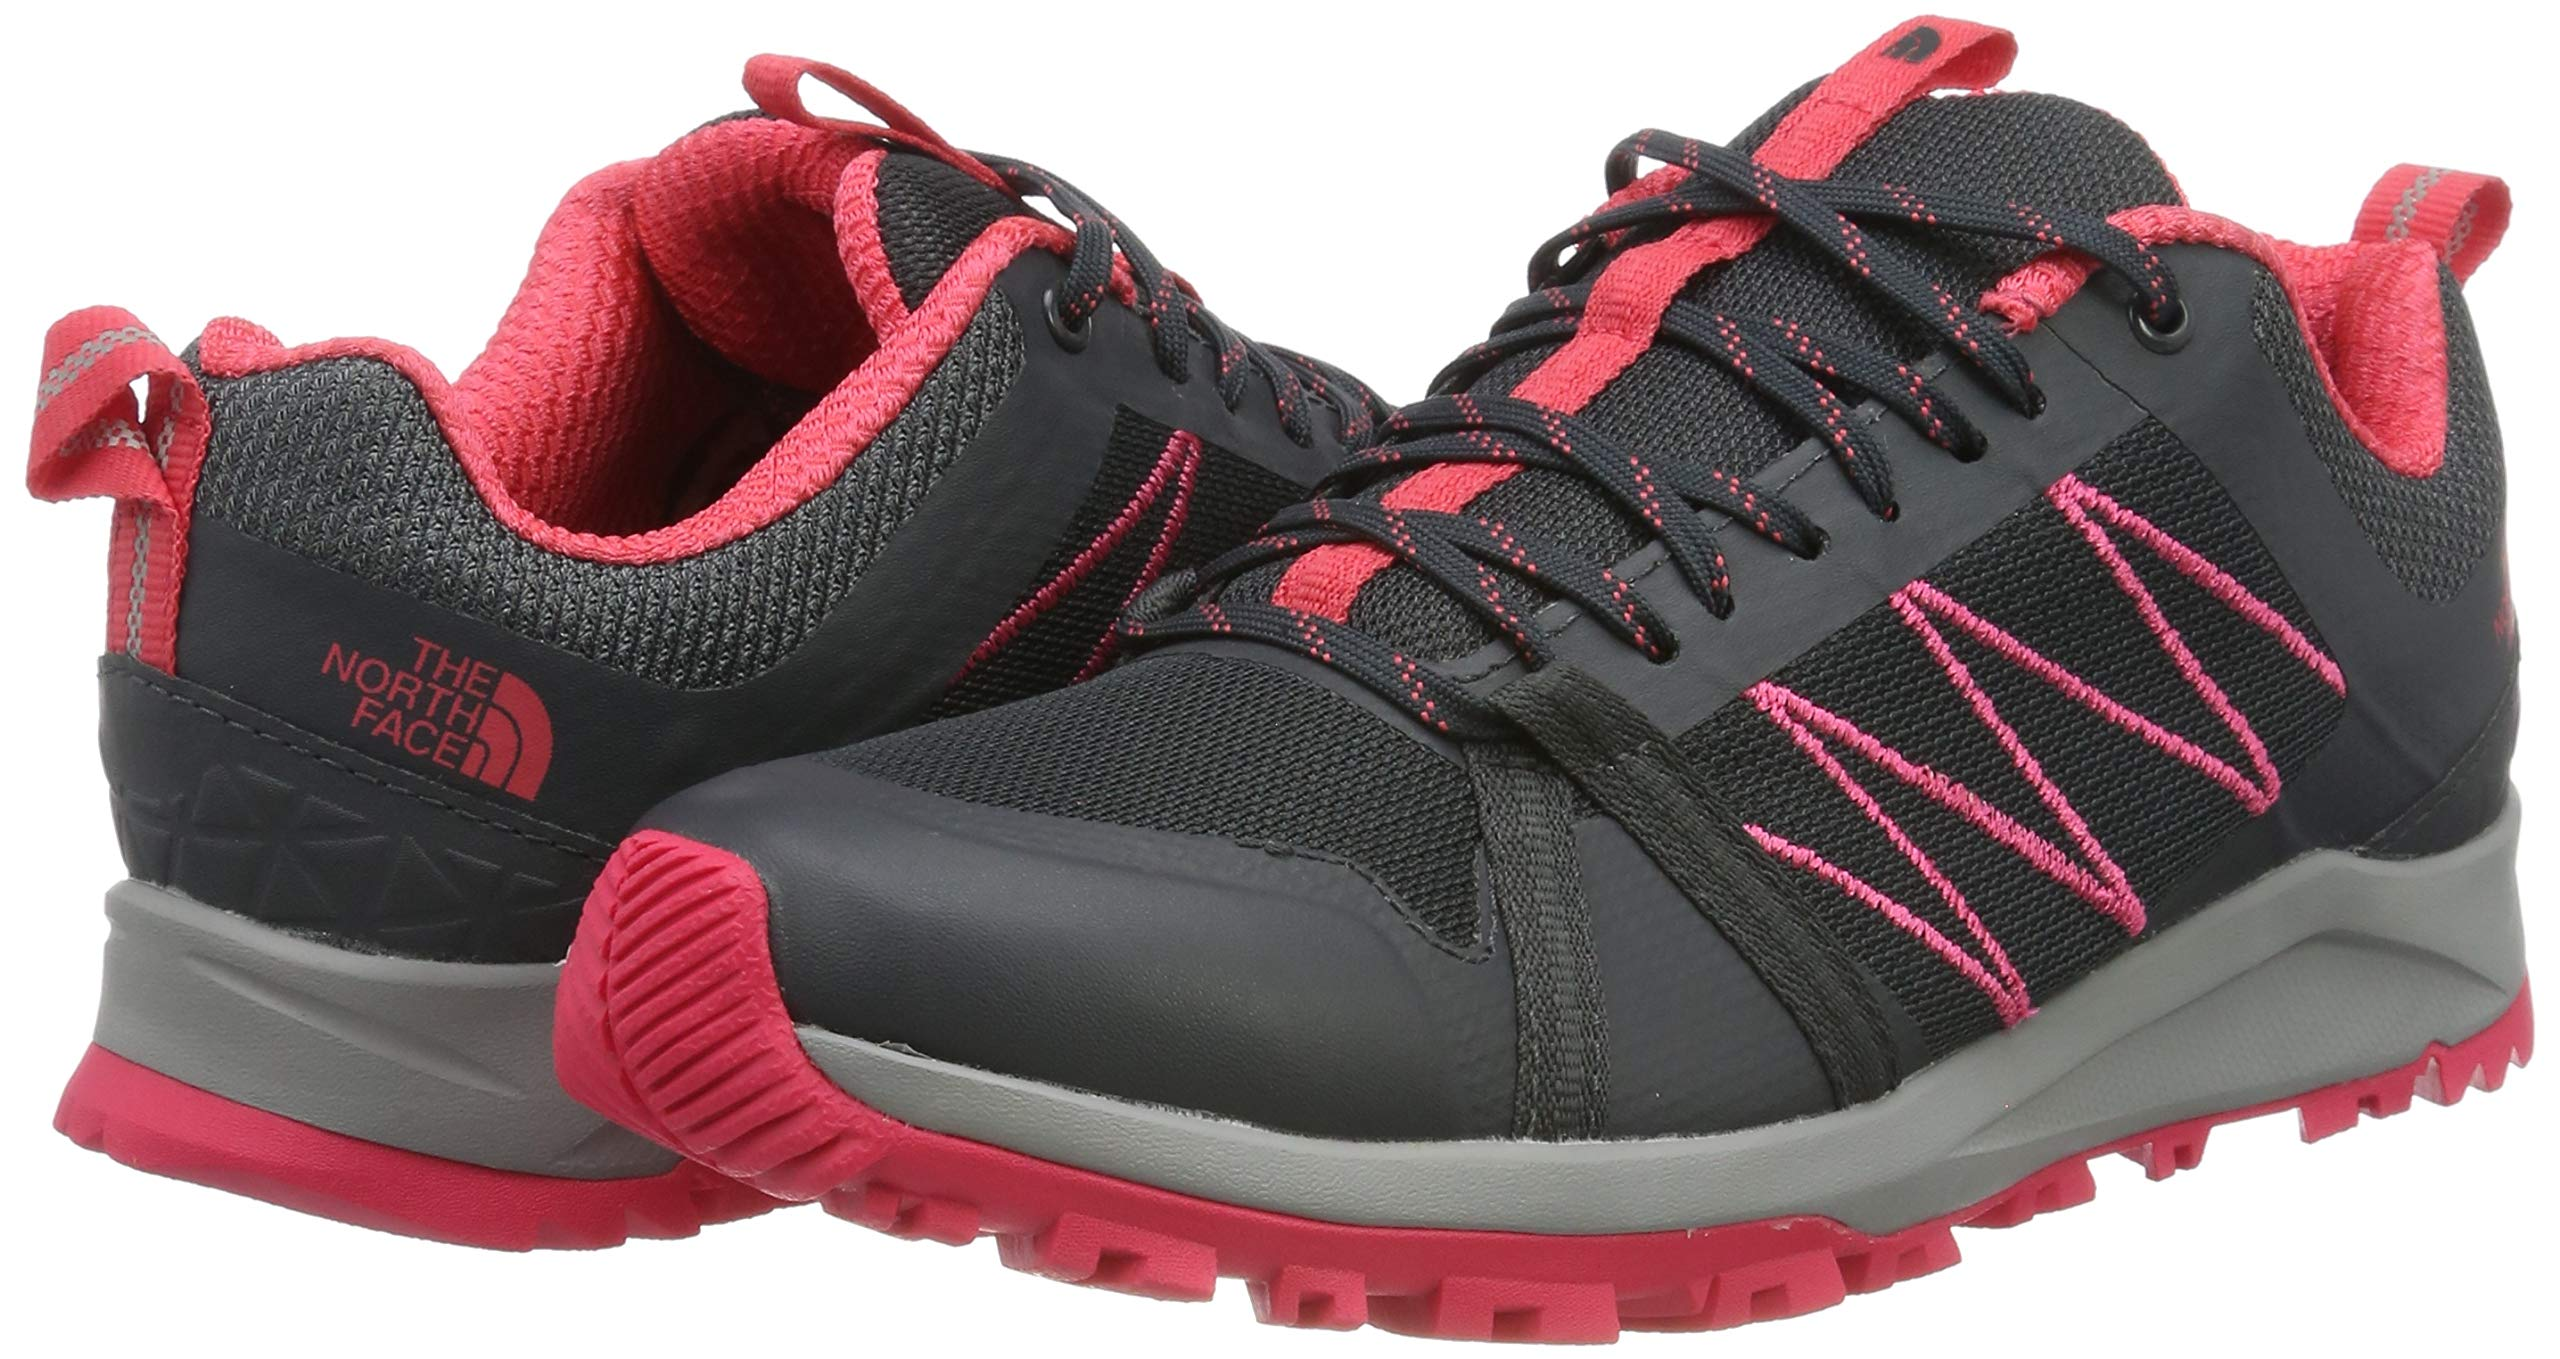 THE NORTH FACE Women's W Litewave Fastpack Ii Low Rise Hiking Boots 5